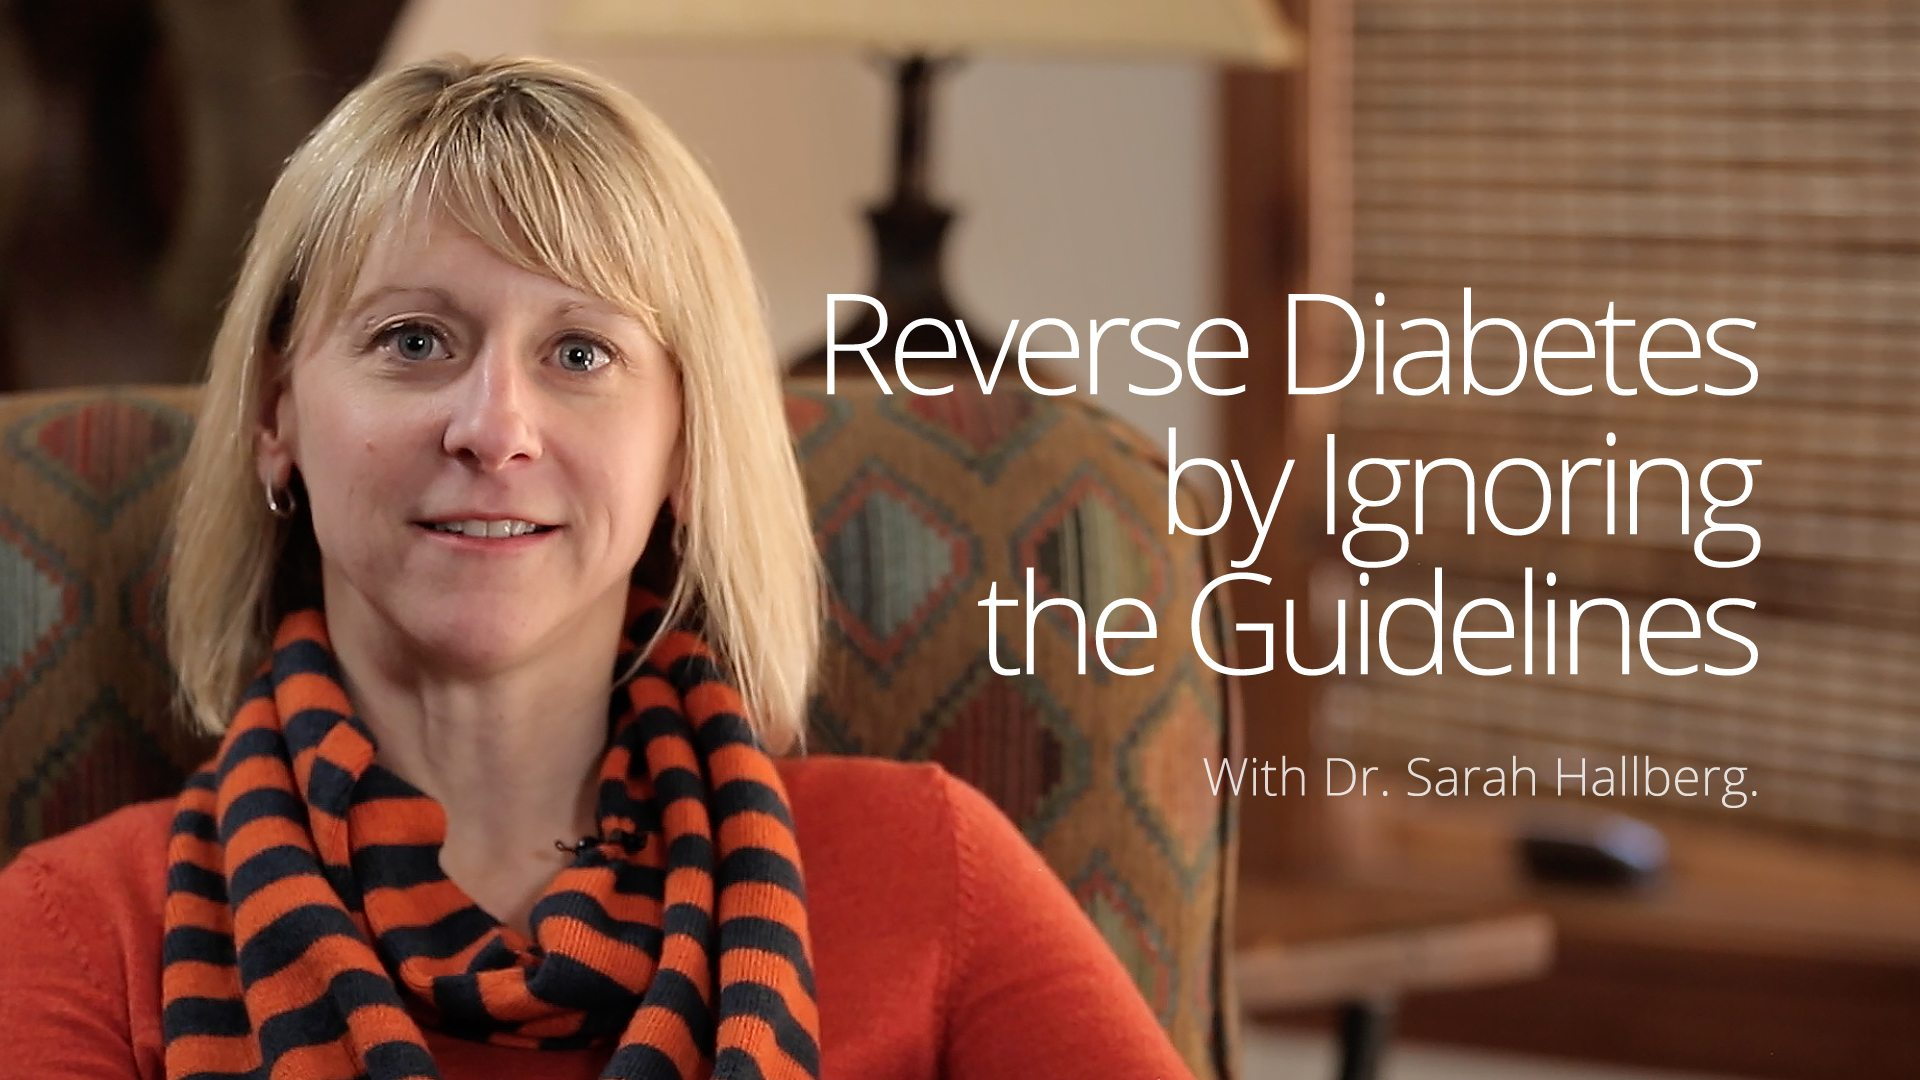 Reverse Diabetes by Ignoring the Guidelines –Dr. Sarah Hallberg interview, part 1